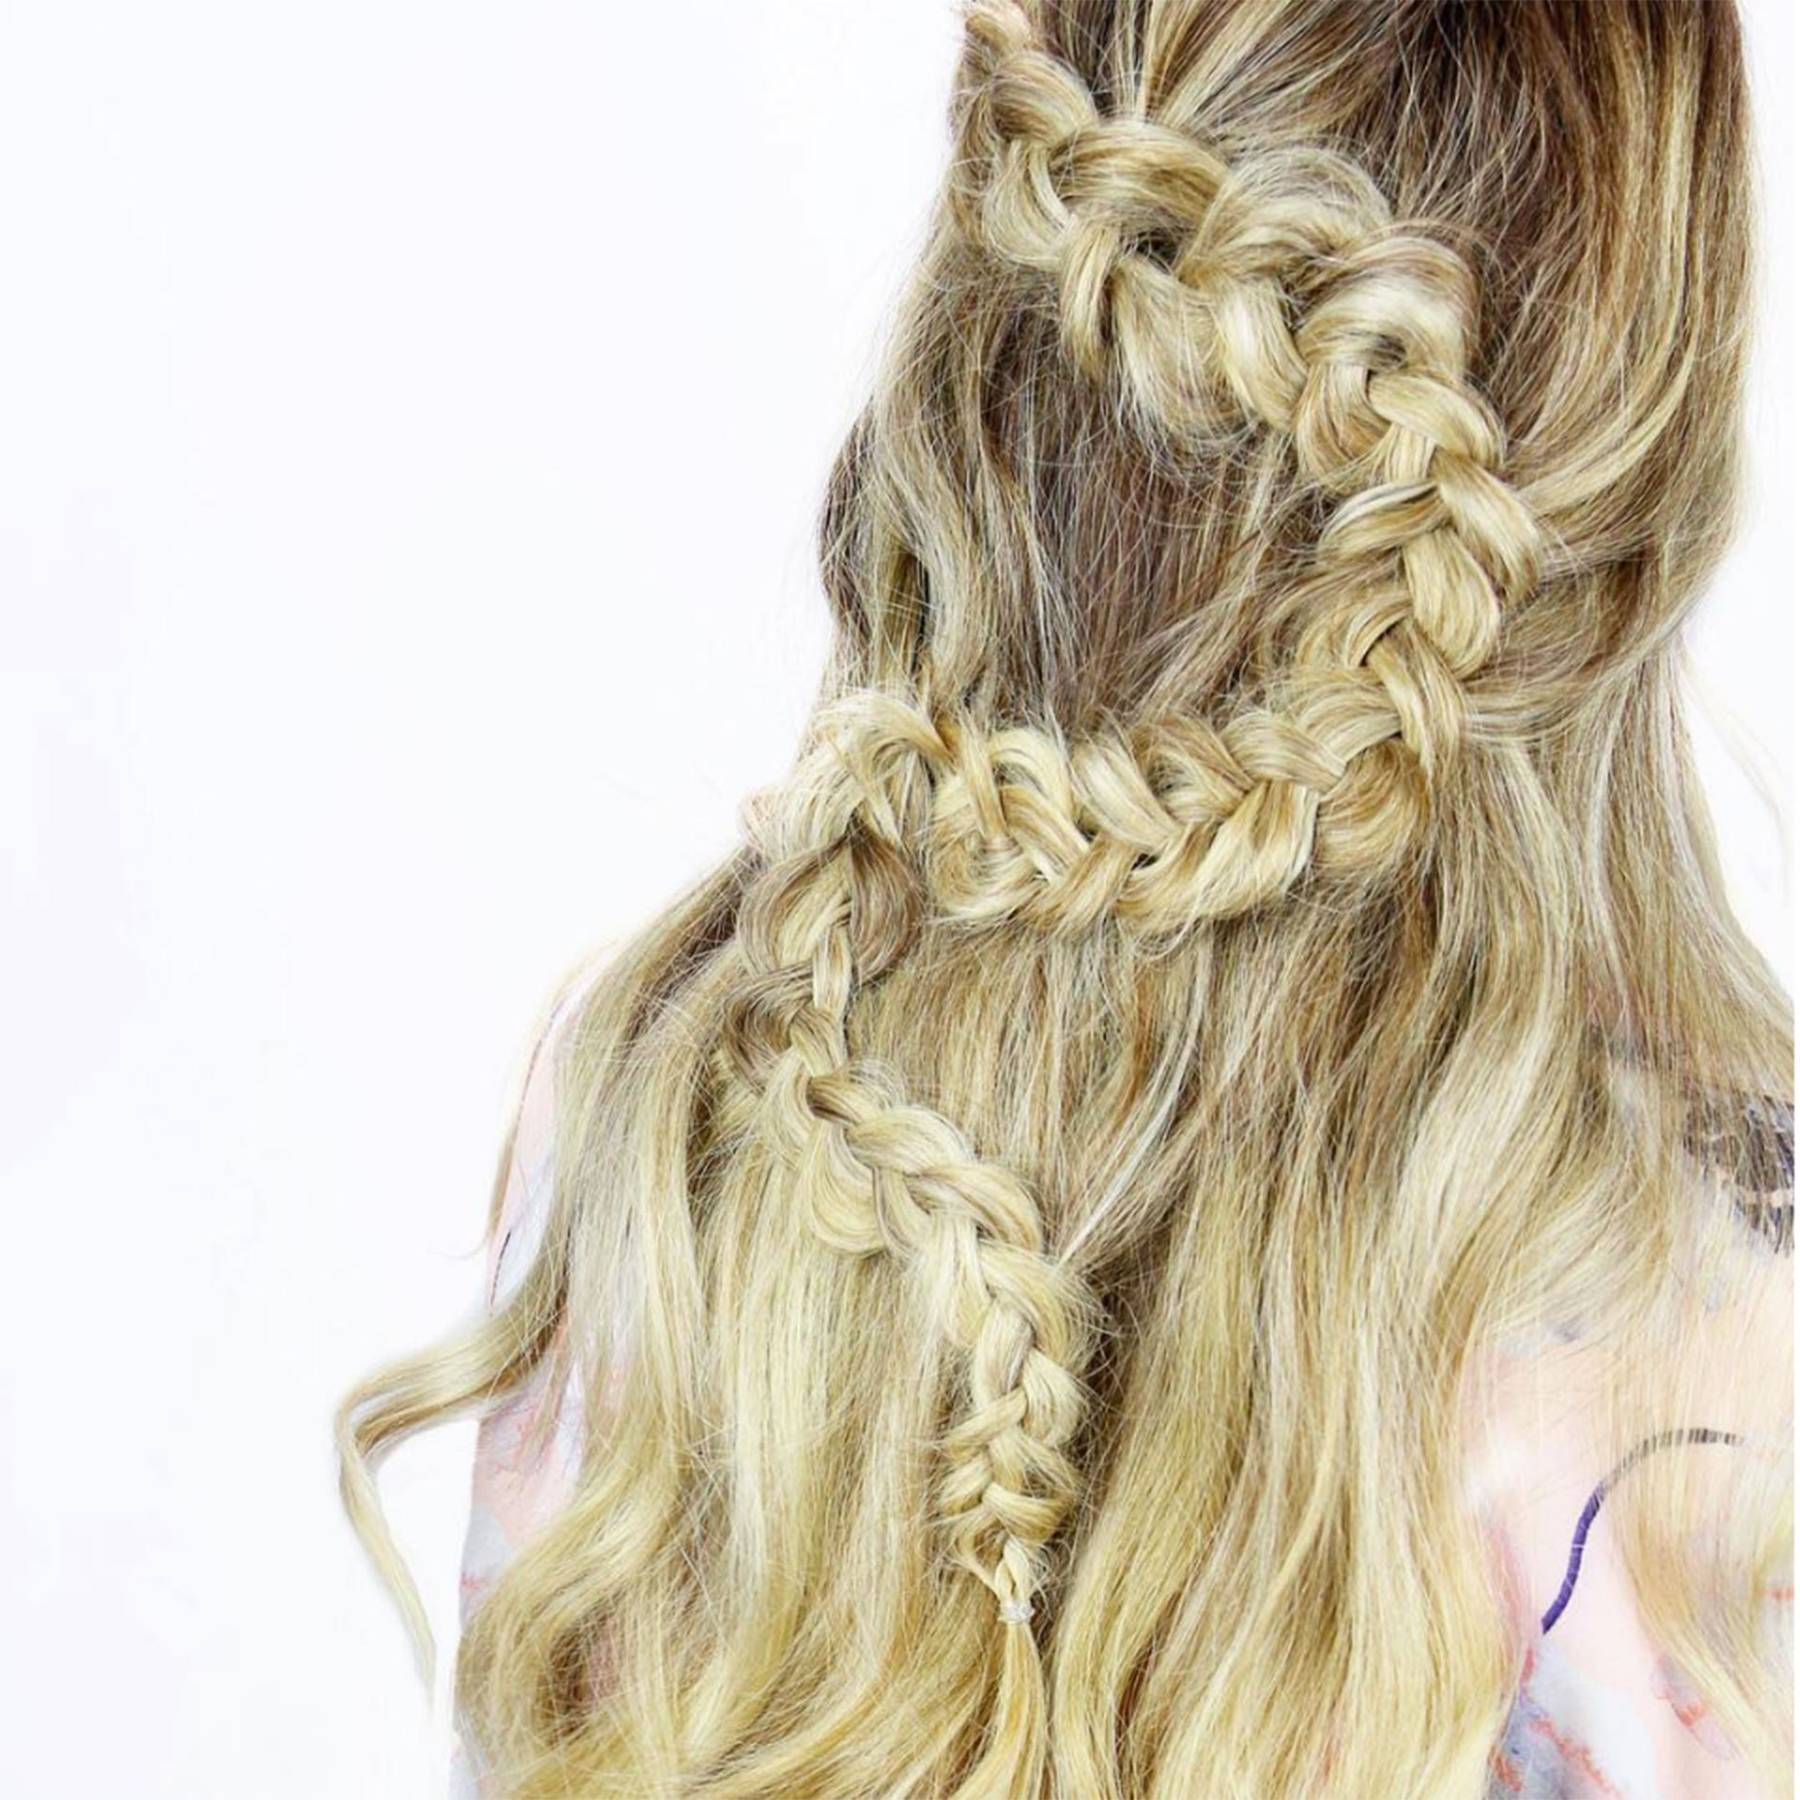 Food for healthy hair: Tips on what to eat for super shiny hair ...